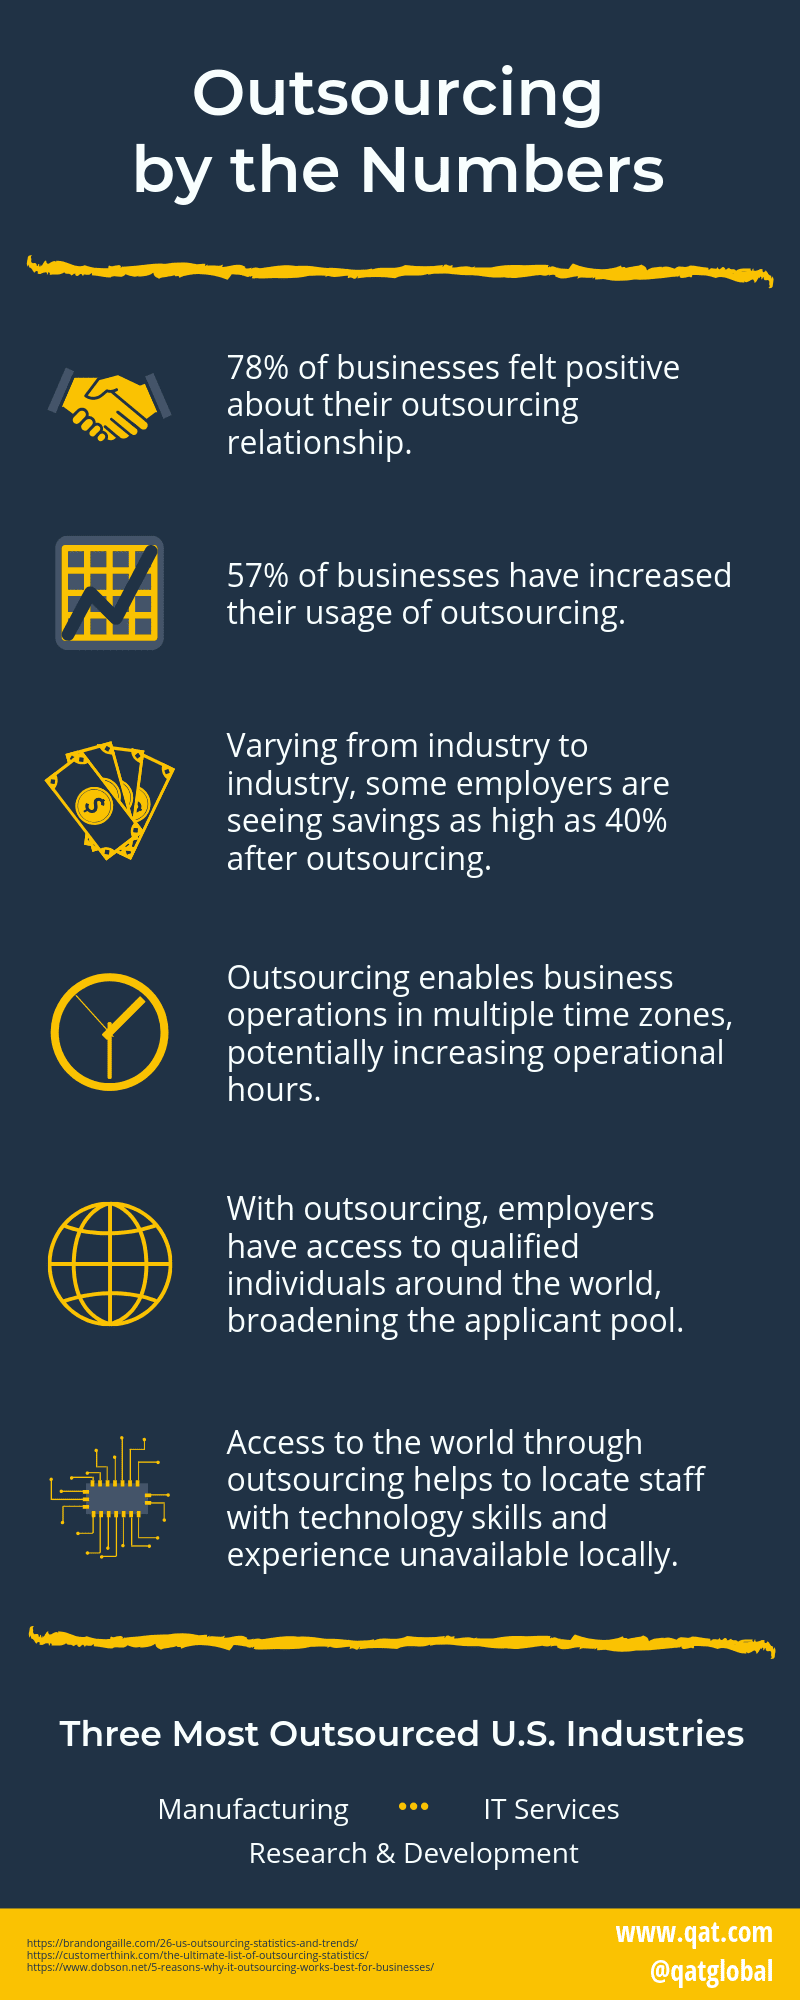 Outsourcing by the Numbers